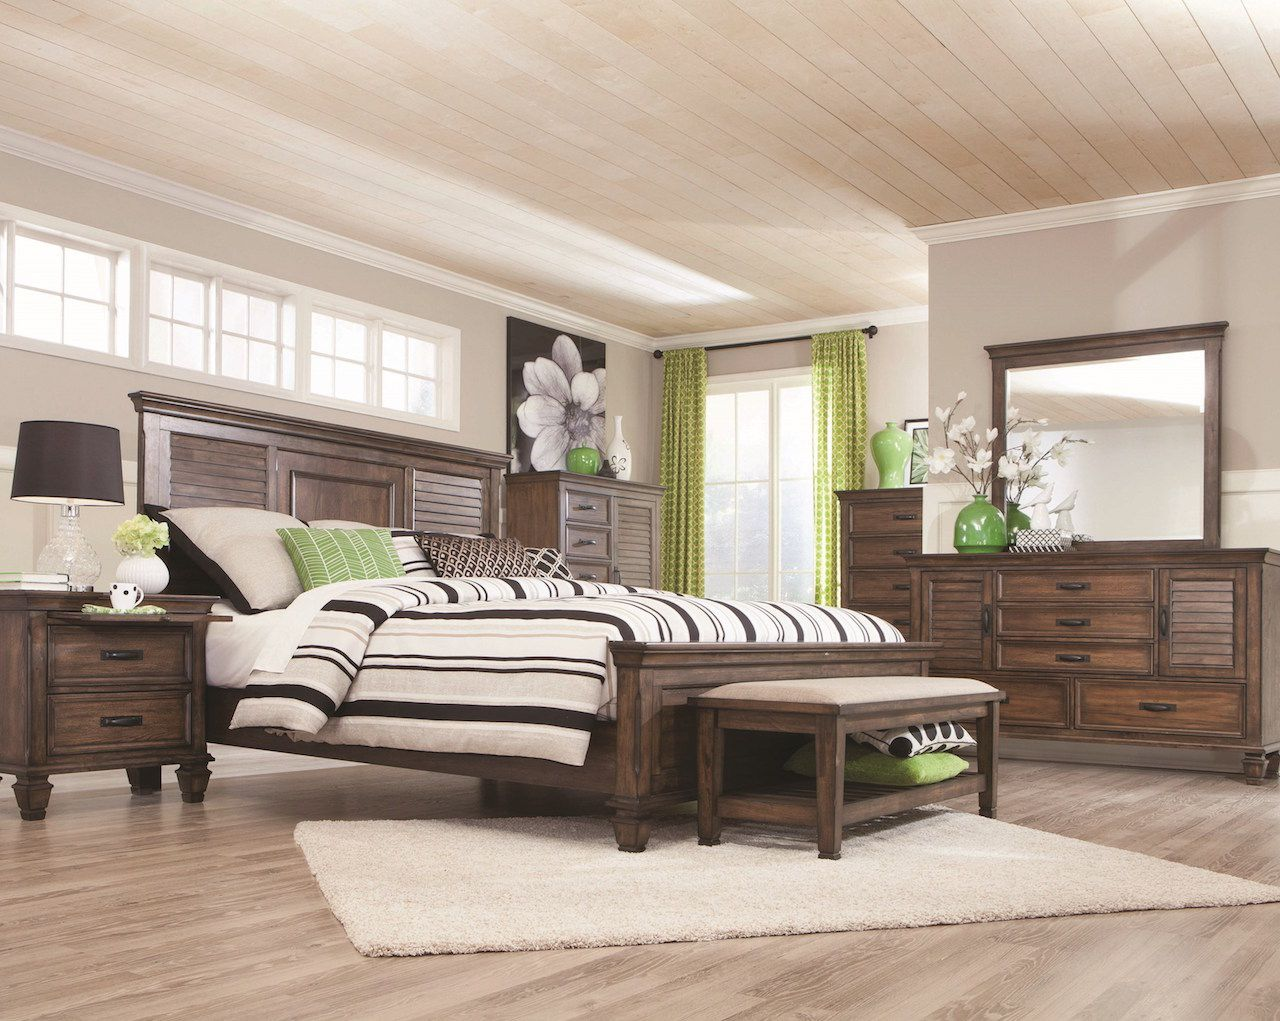 Franco Collection 200971 Bedroom Set in Rustic